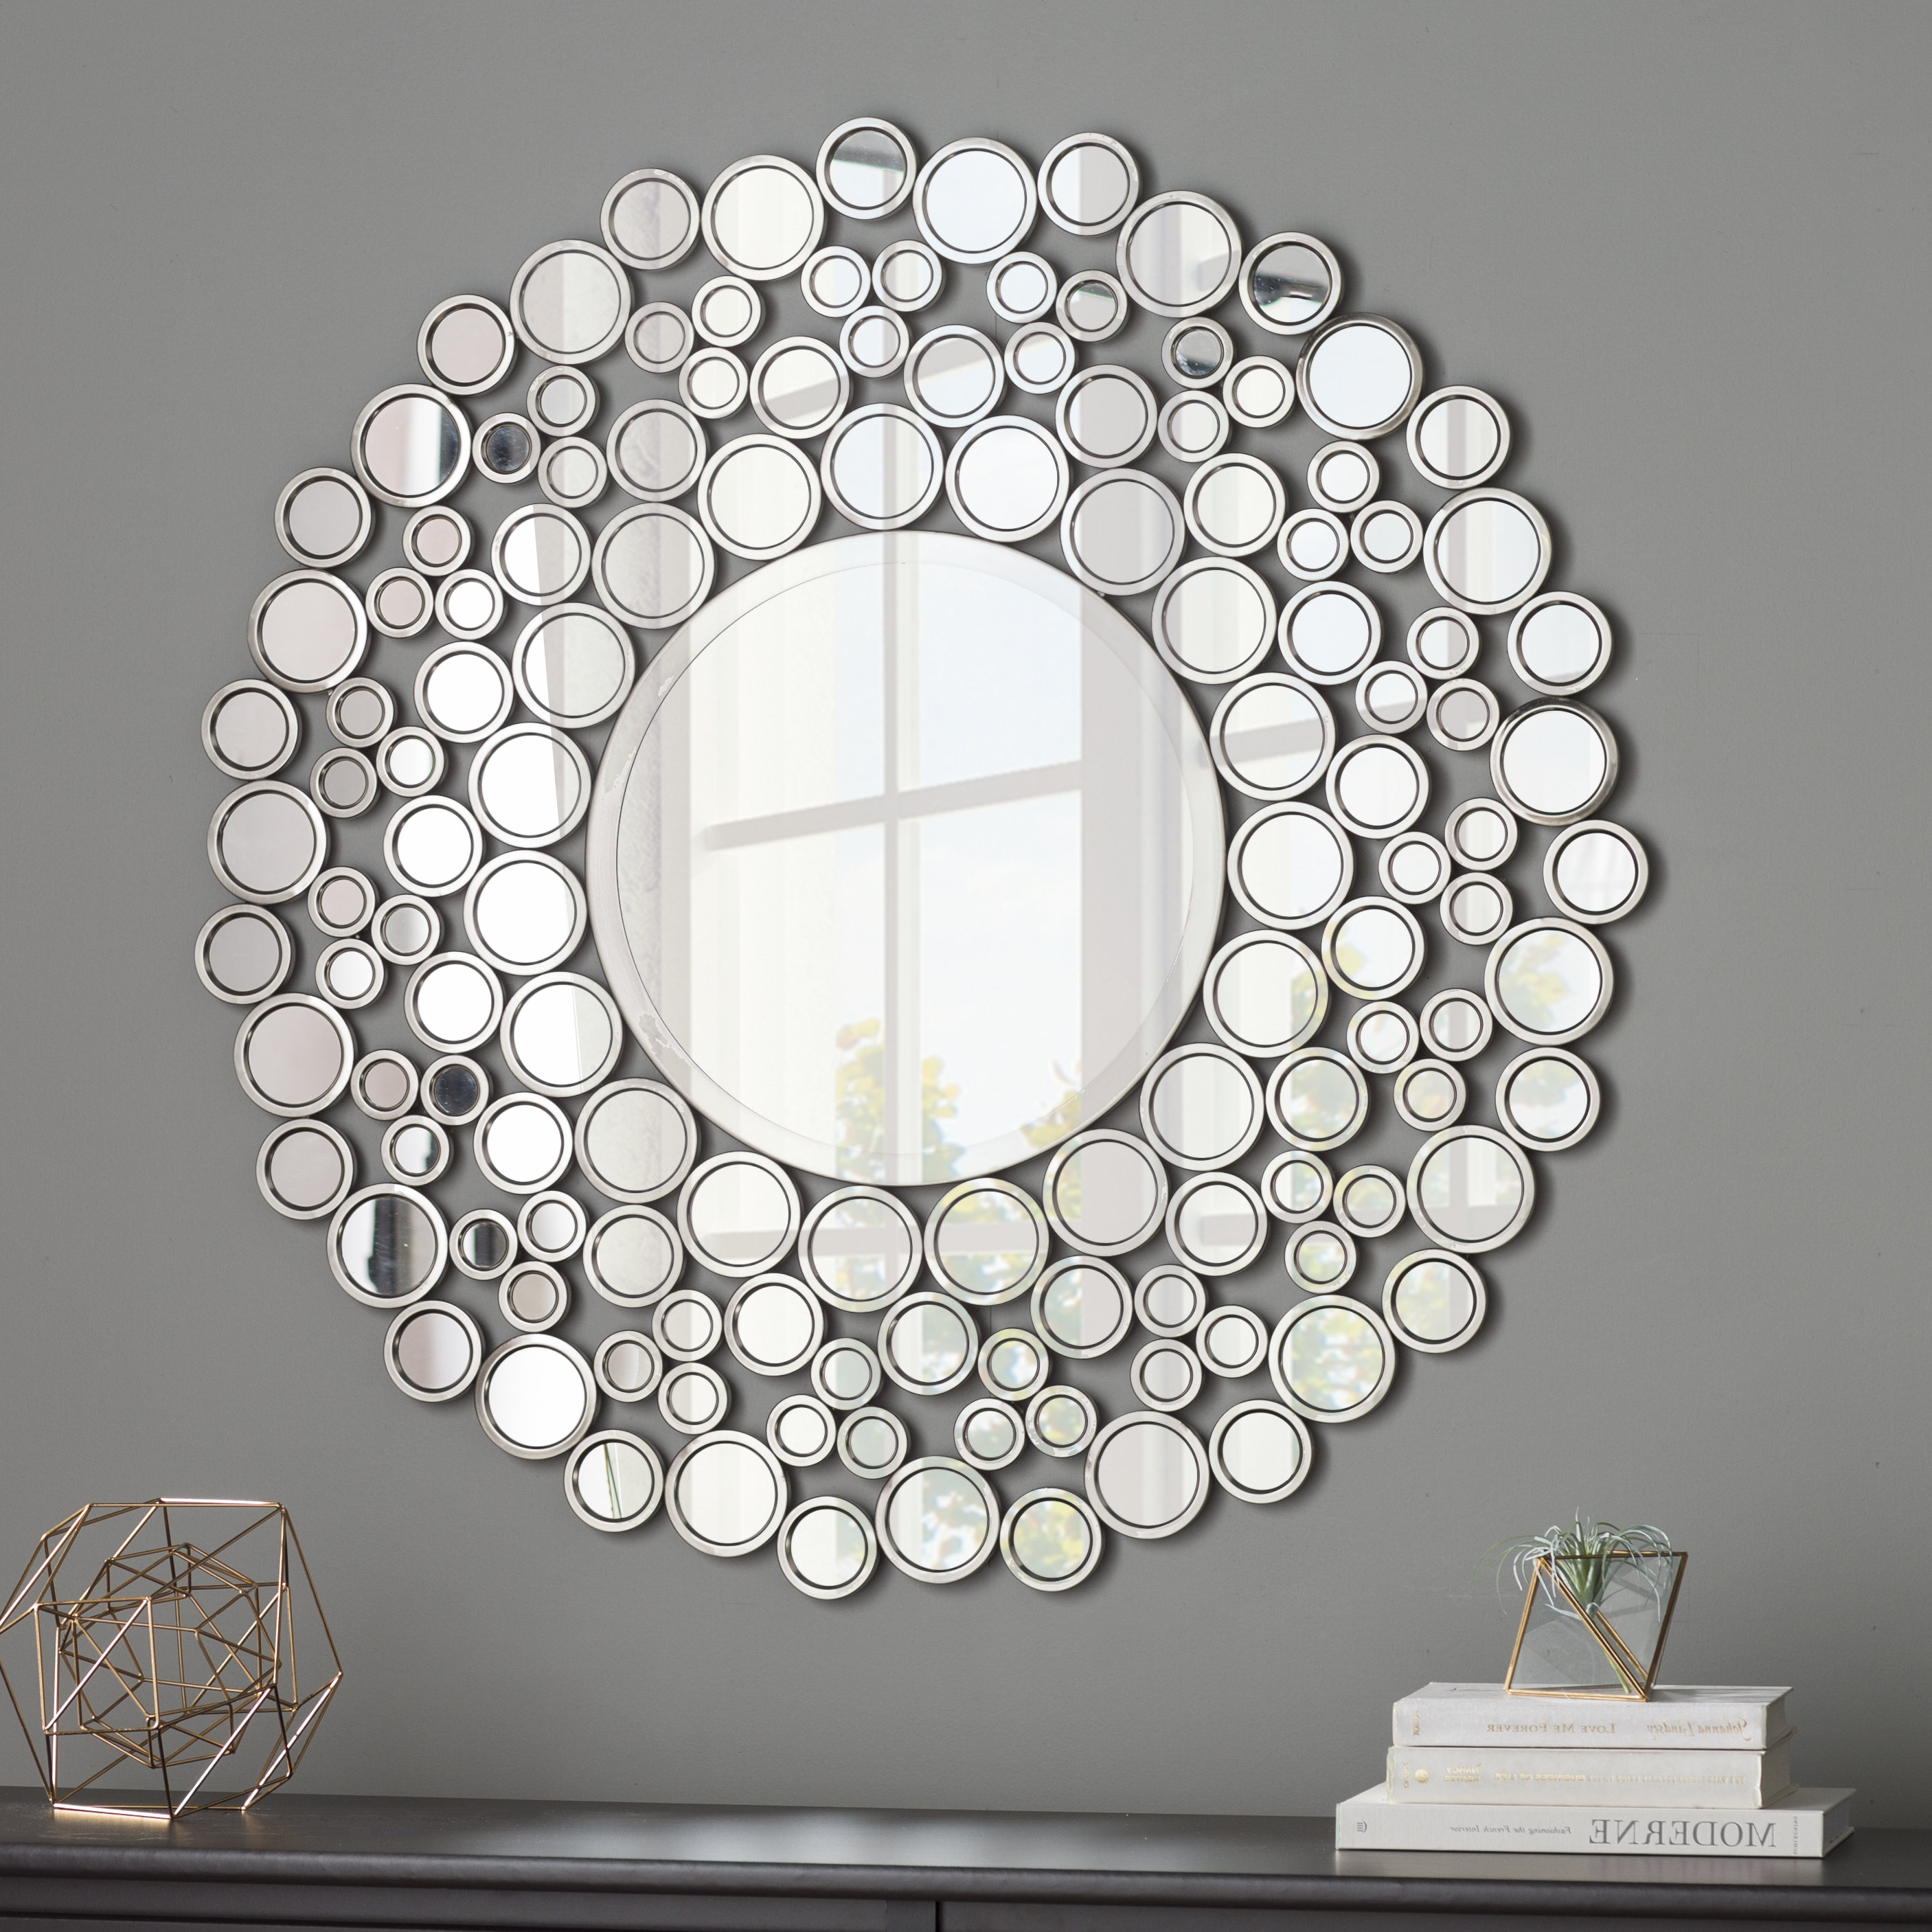 Bruckdale Decorative Flower Accent Mirrors With Regard To Popular Wrought Studio Kentwood Round Wall Mirror (View 17 of 20)